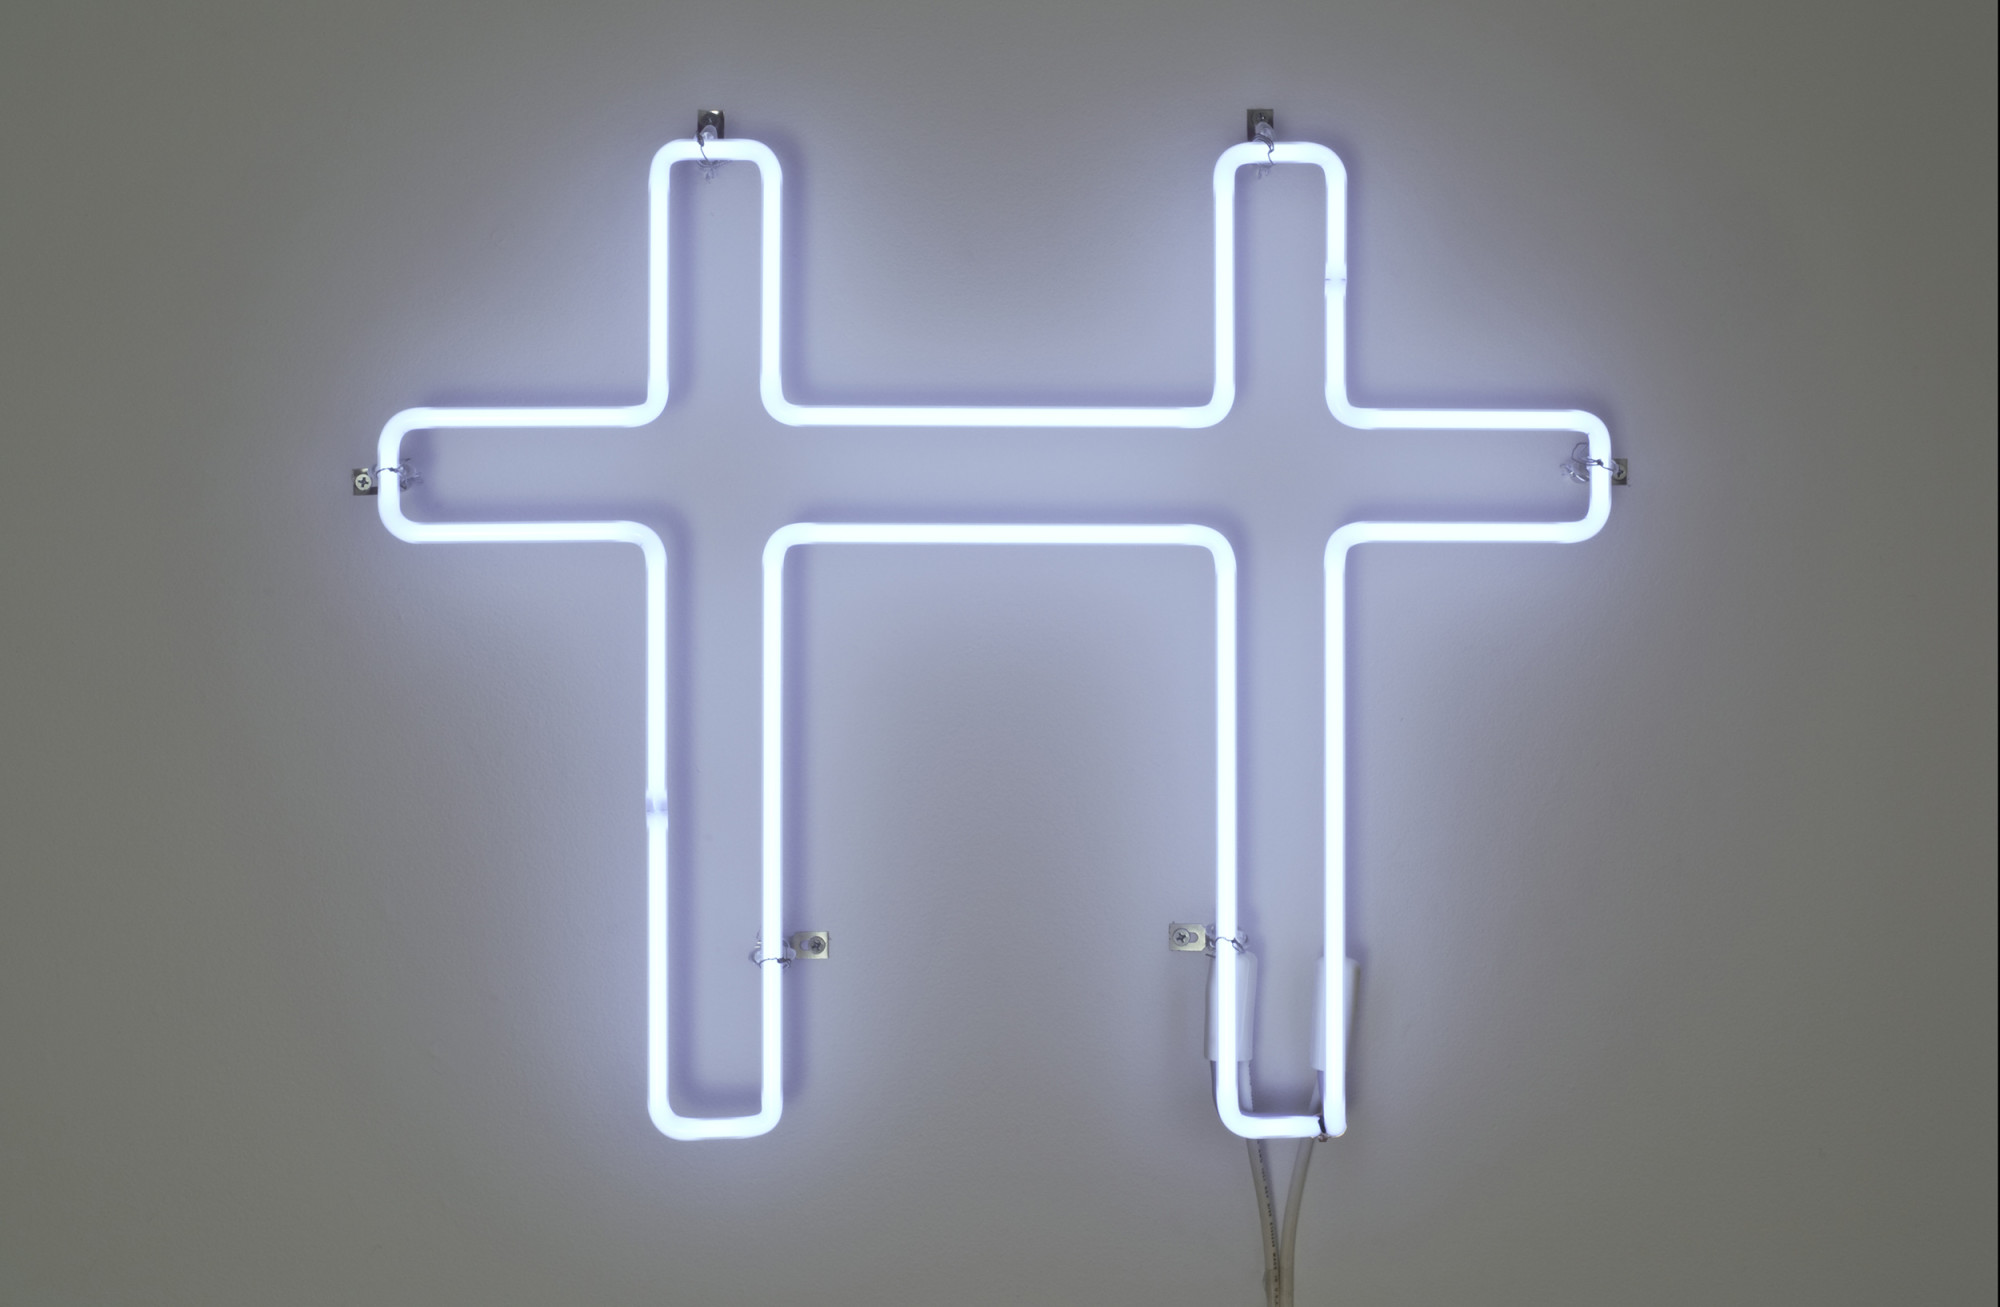 "<div class=""title""><em>Neon Cross for Two</em>, 2007</div><div class=""medium"">white neon</div><div class=""dimensions"">45.72 x 58.42 x 5.4 cm<br />18 x 23 x 2 1/8 in.</div>"